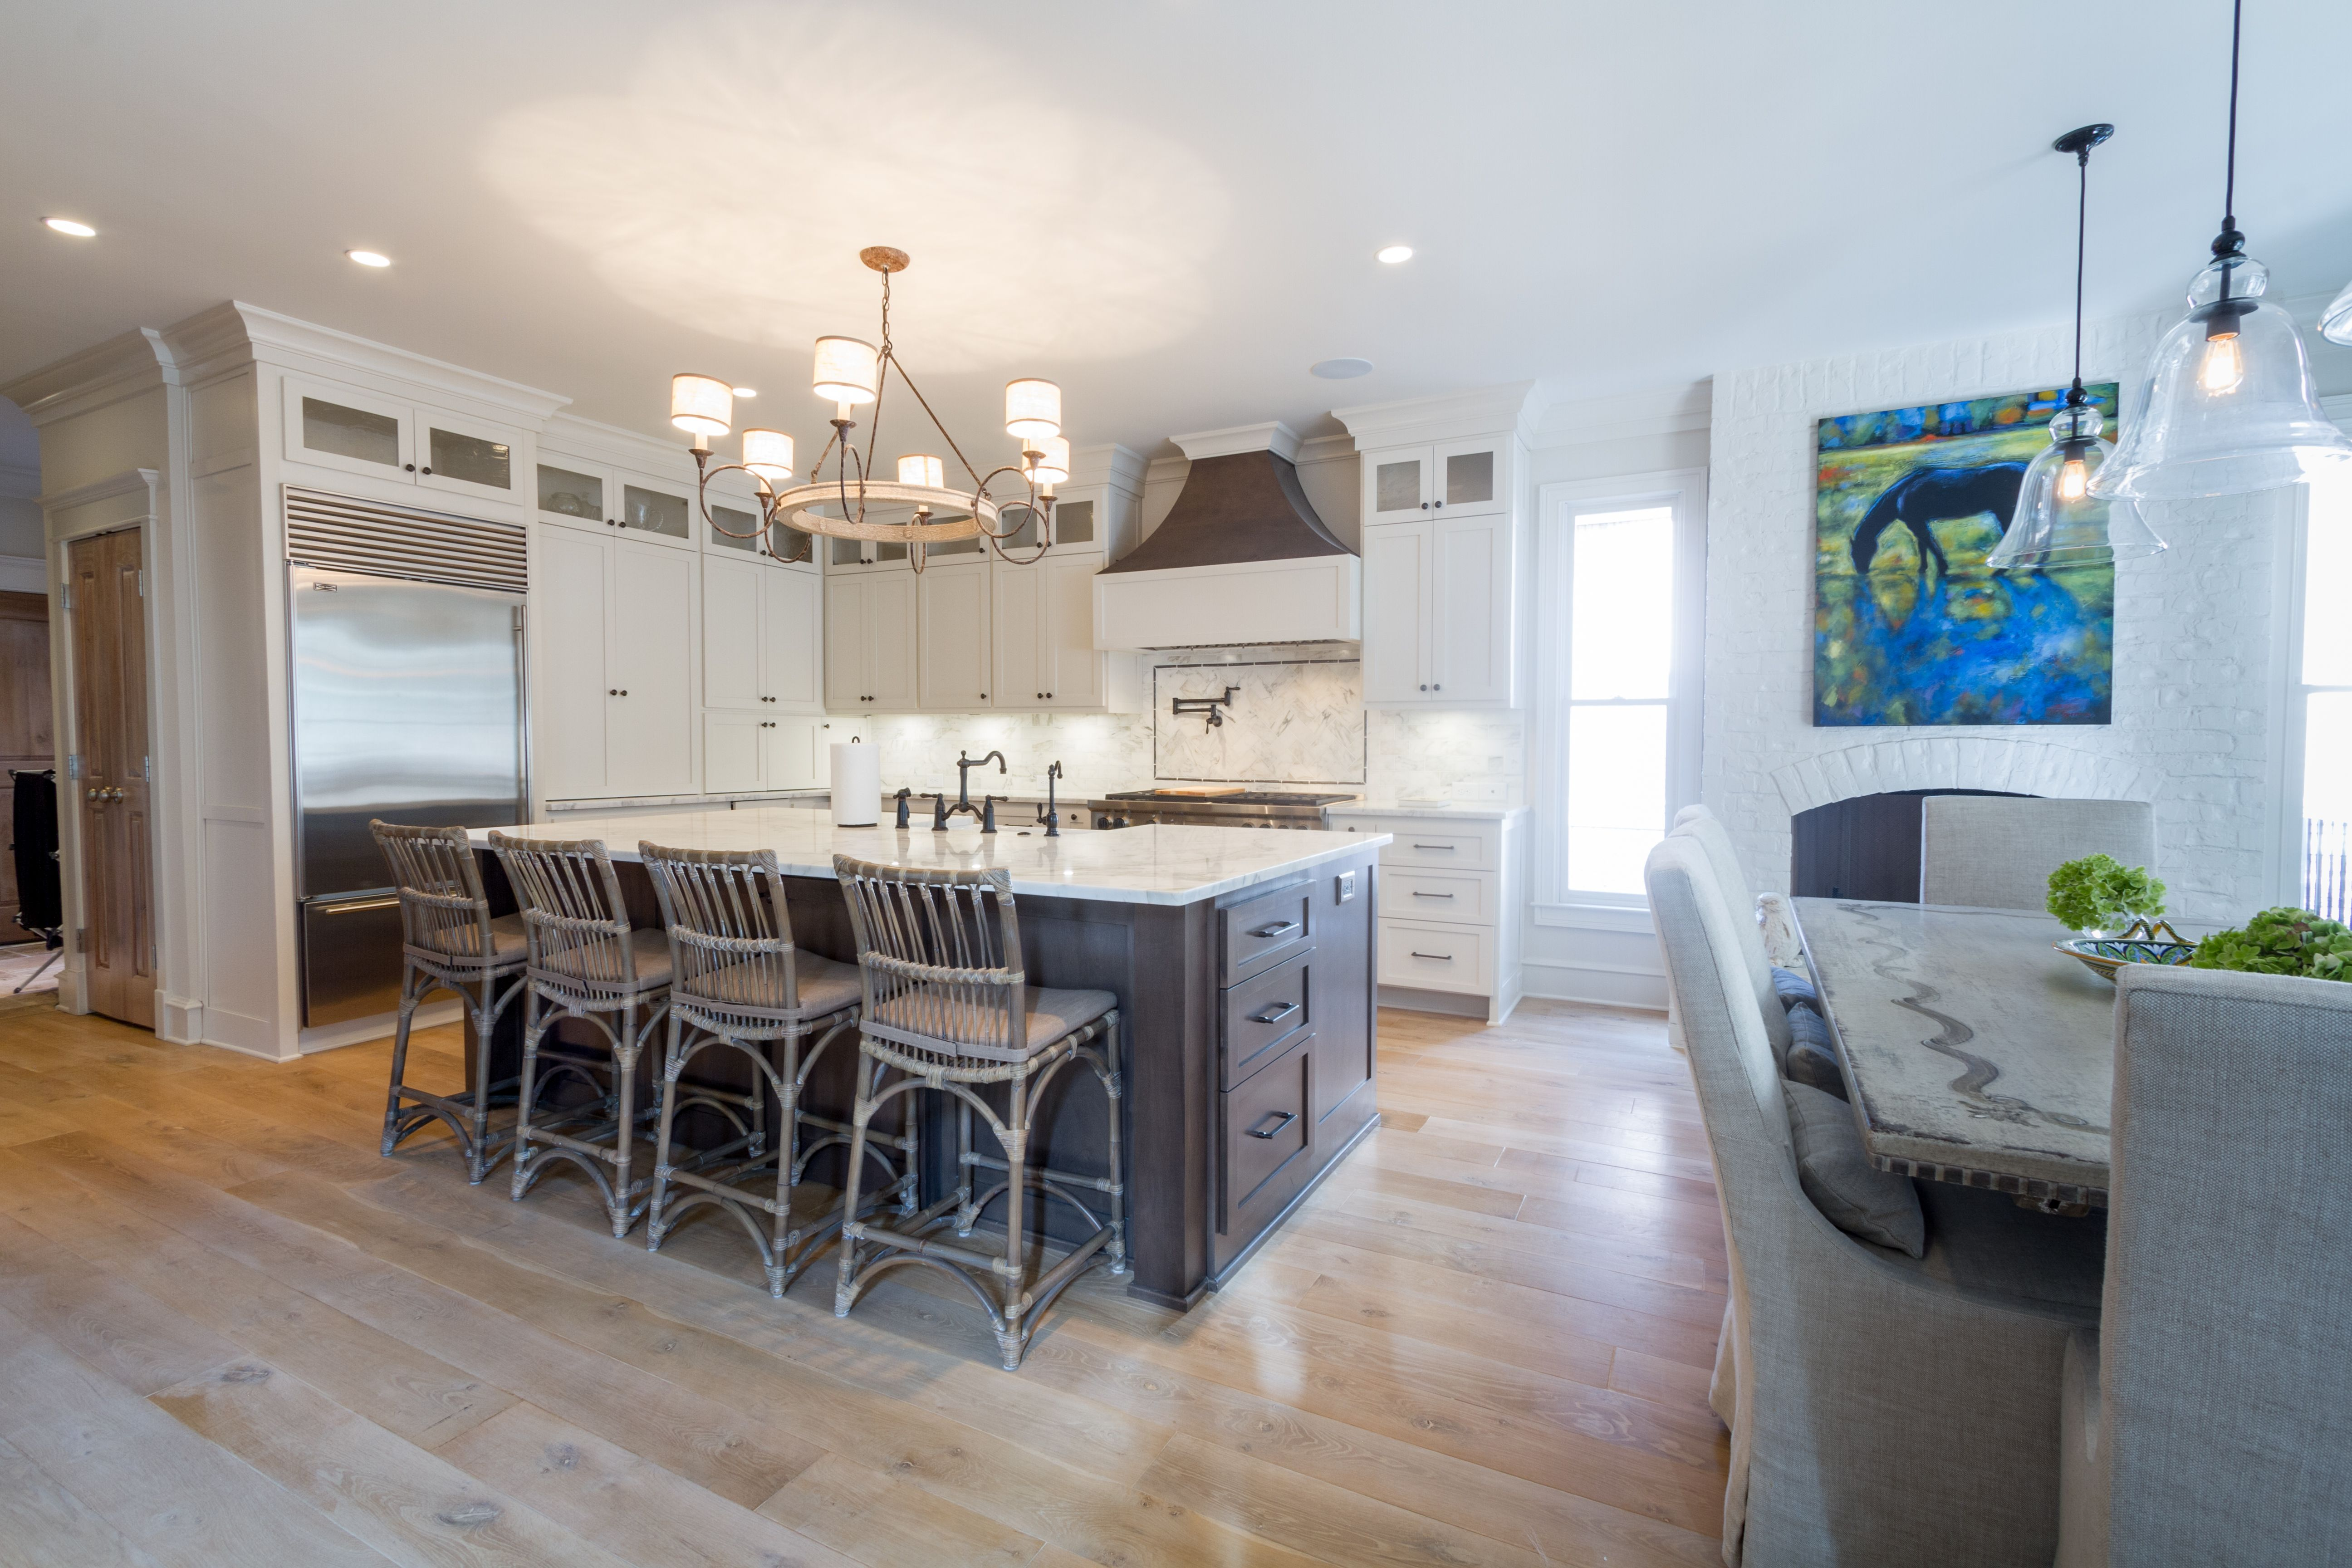 This is a custom kitchen featuring shaker with a